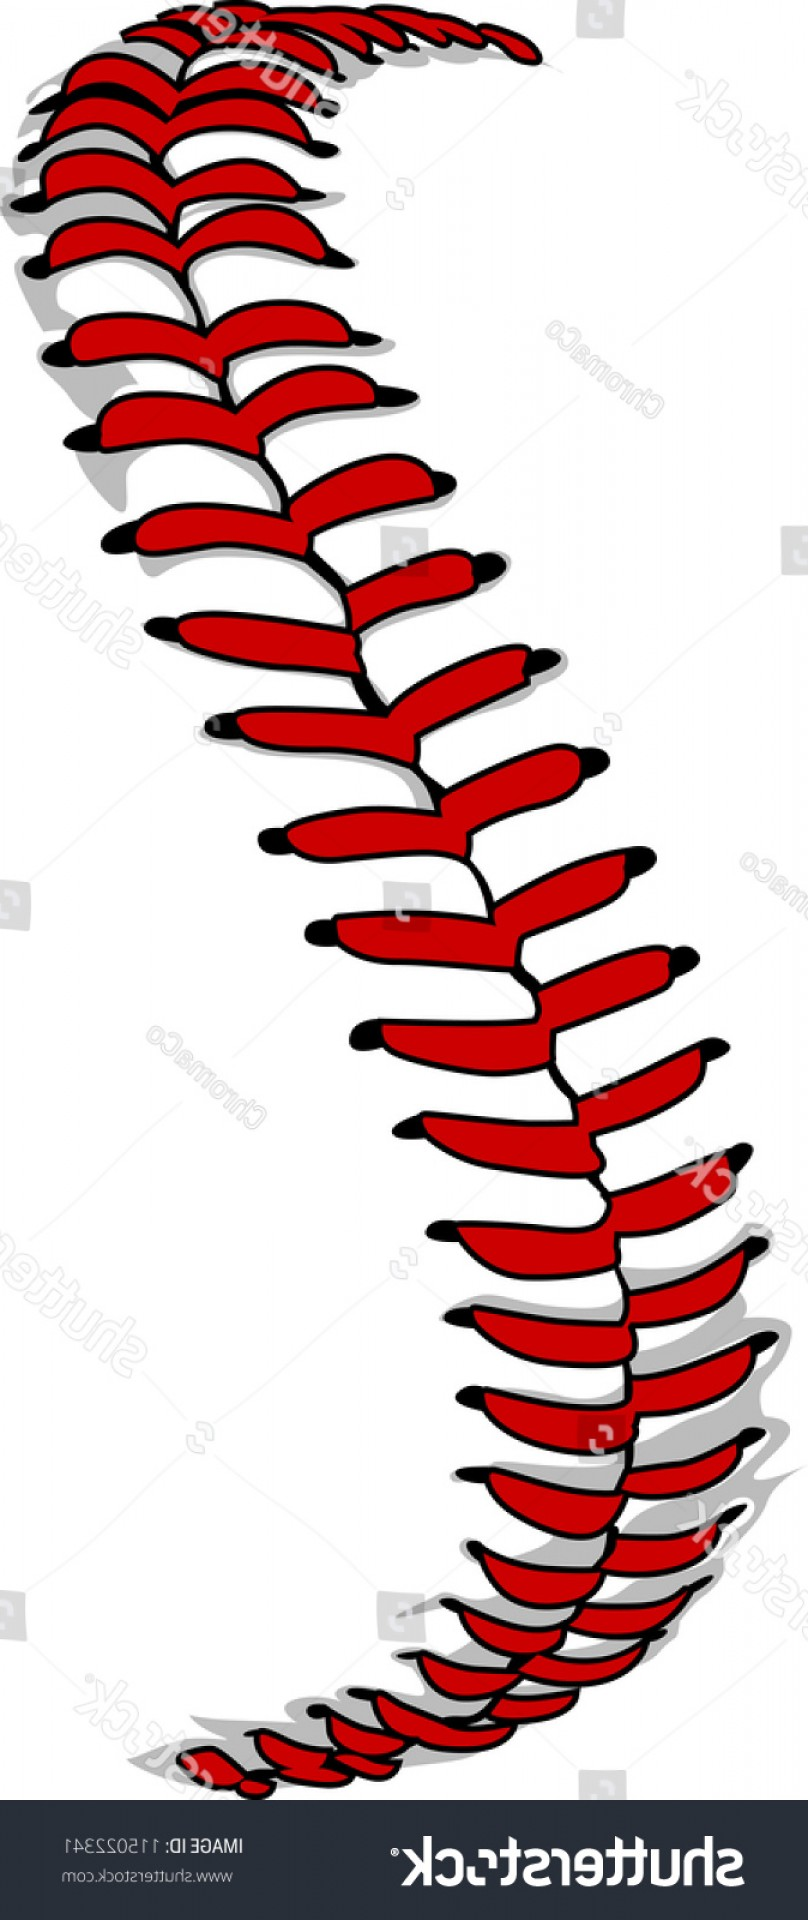 Softball Laces Vector Art B W: Vector Illustration Softball Laces Baseball